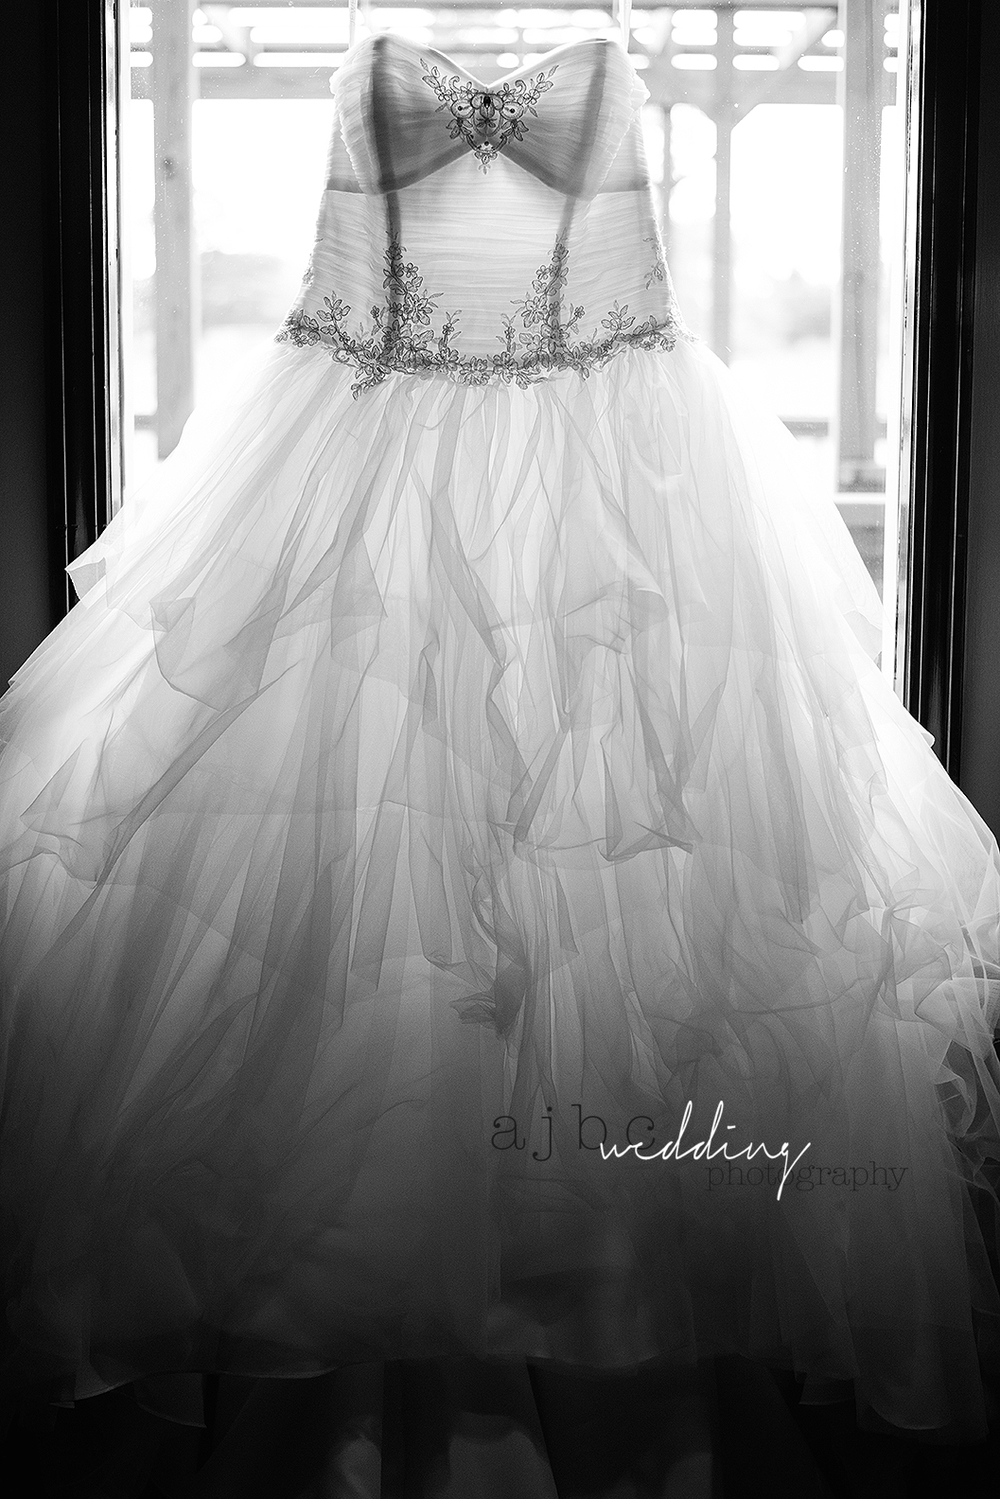 ajbcphotography-port-huron-michigan-wedding-photographer-love-bride-groom-family-michigan-wedding-photographer-wedding-dress-window.jpg